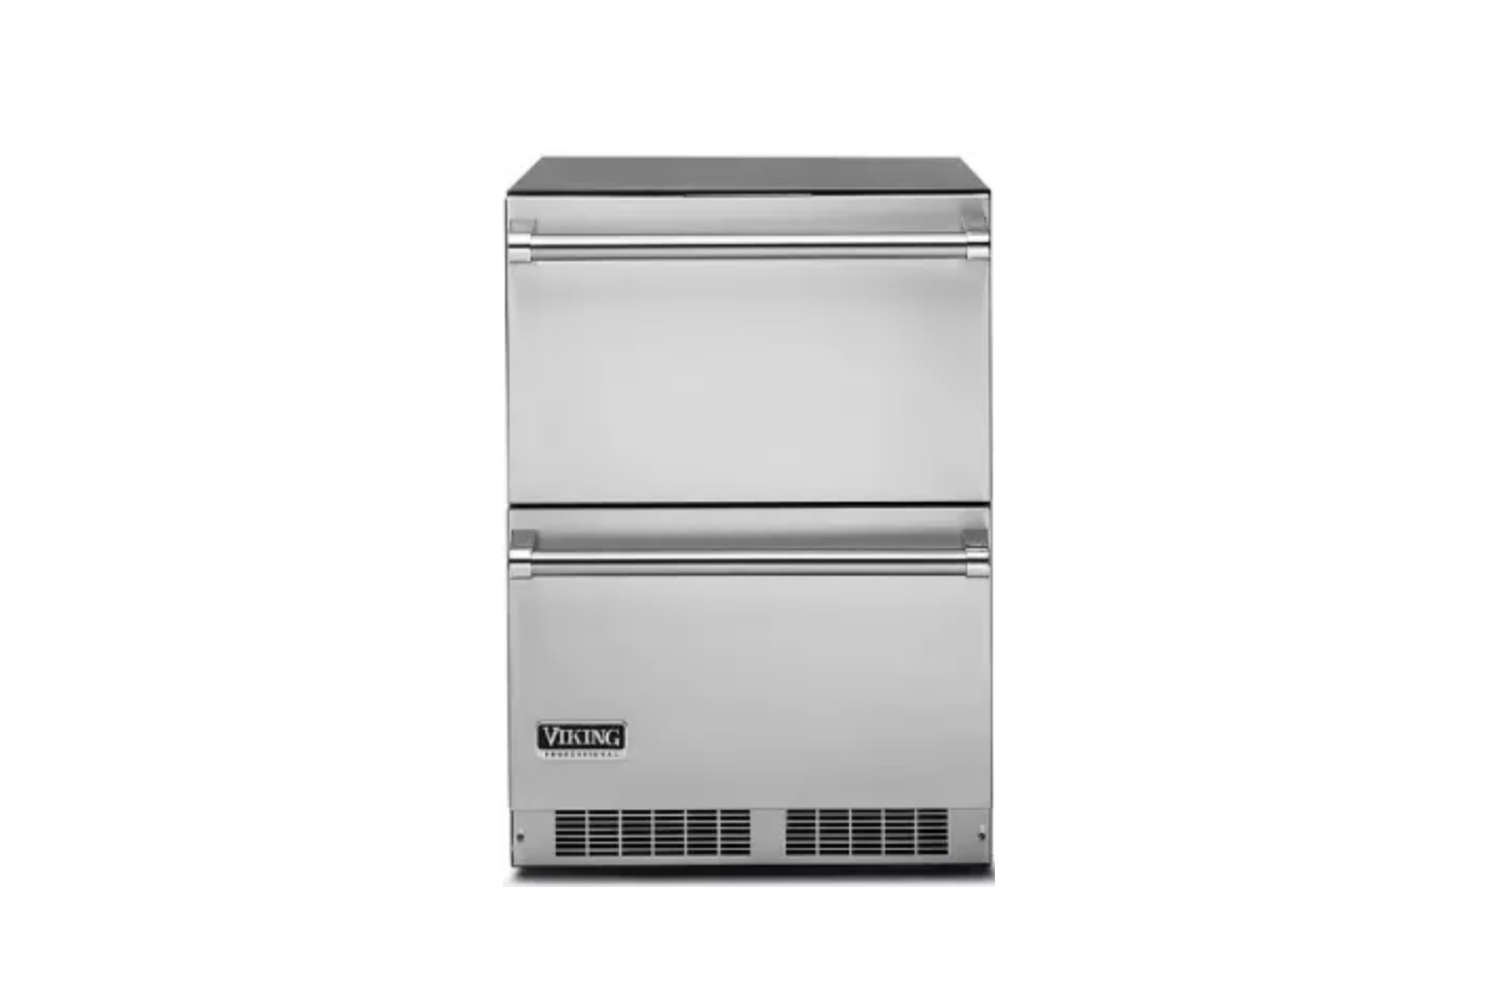 10 Easy Pieces Choosing An Undercounter Refrigerator The Viking 5 Series (VDUI5\240DSS) \24 Inch Undercounter Refrigerator Drawers are \$3,499 at AJ Madison.